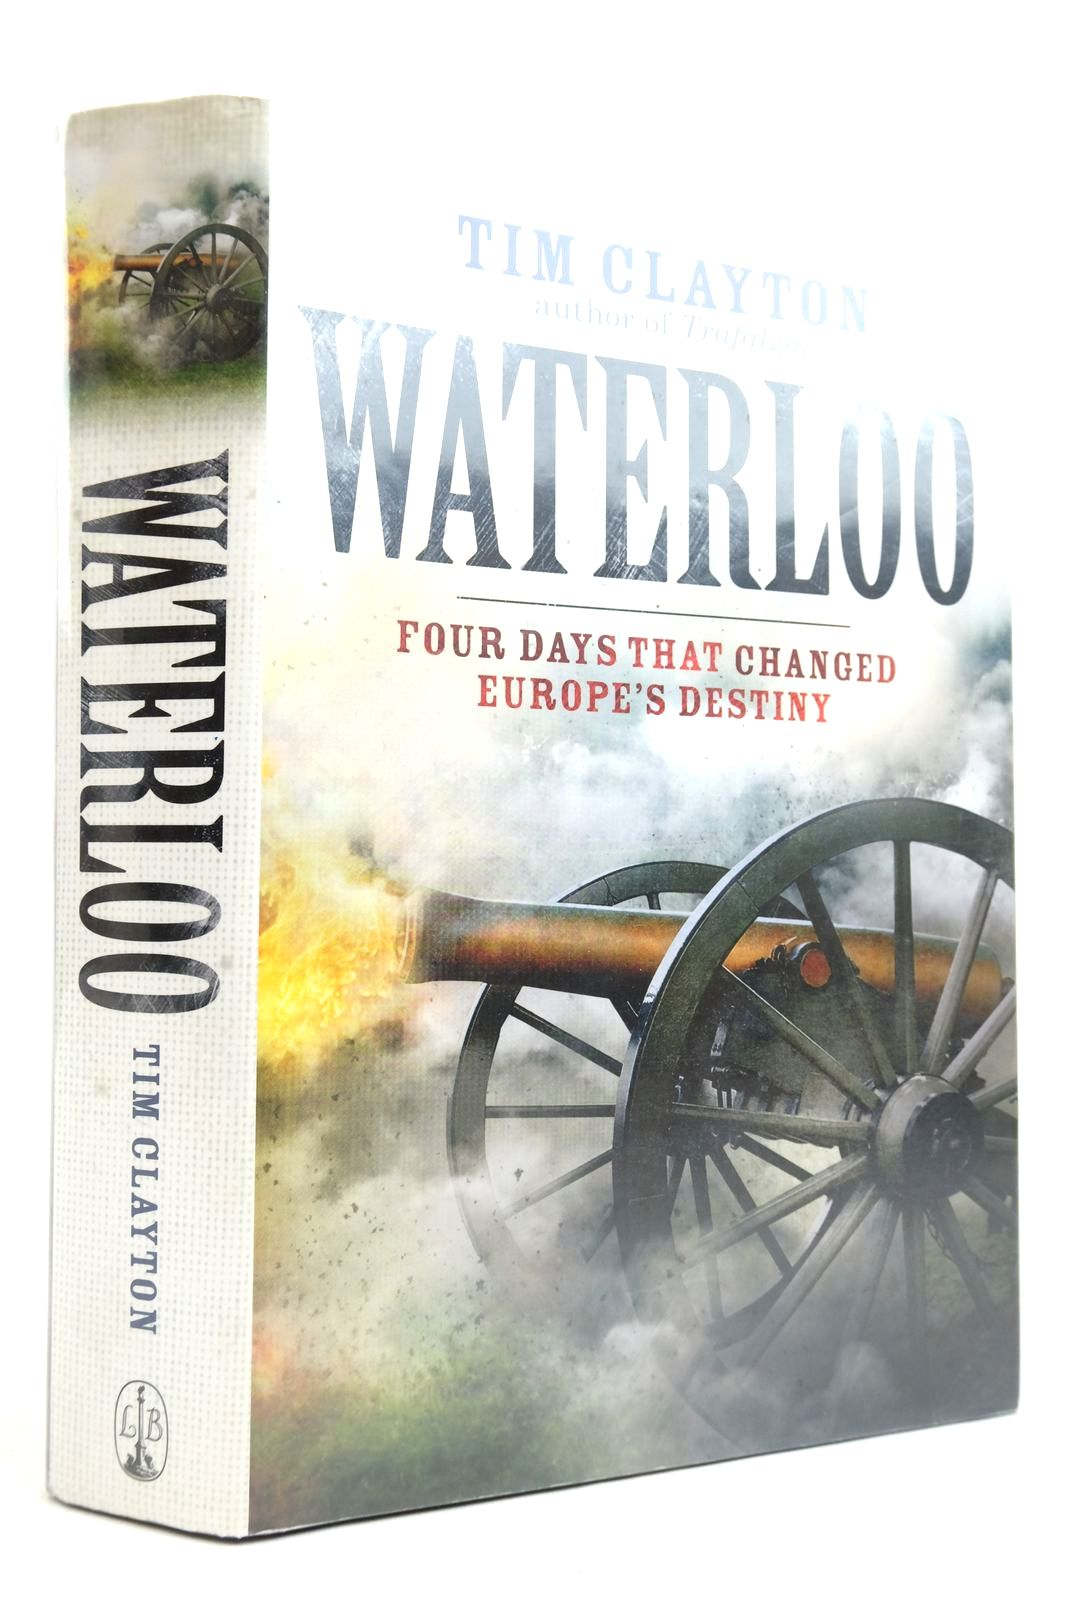 Photo of WATERLOO: FOUR DAYS THAT CHANGED EUROPE'S DESTINY written by Clayton, Tim published by Little Brown (STOCK CODE: 2135392)  for sale by Stella & Rose's Books